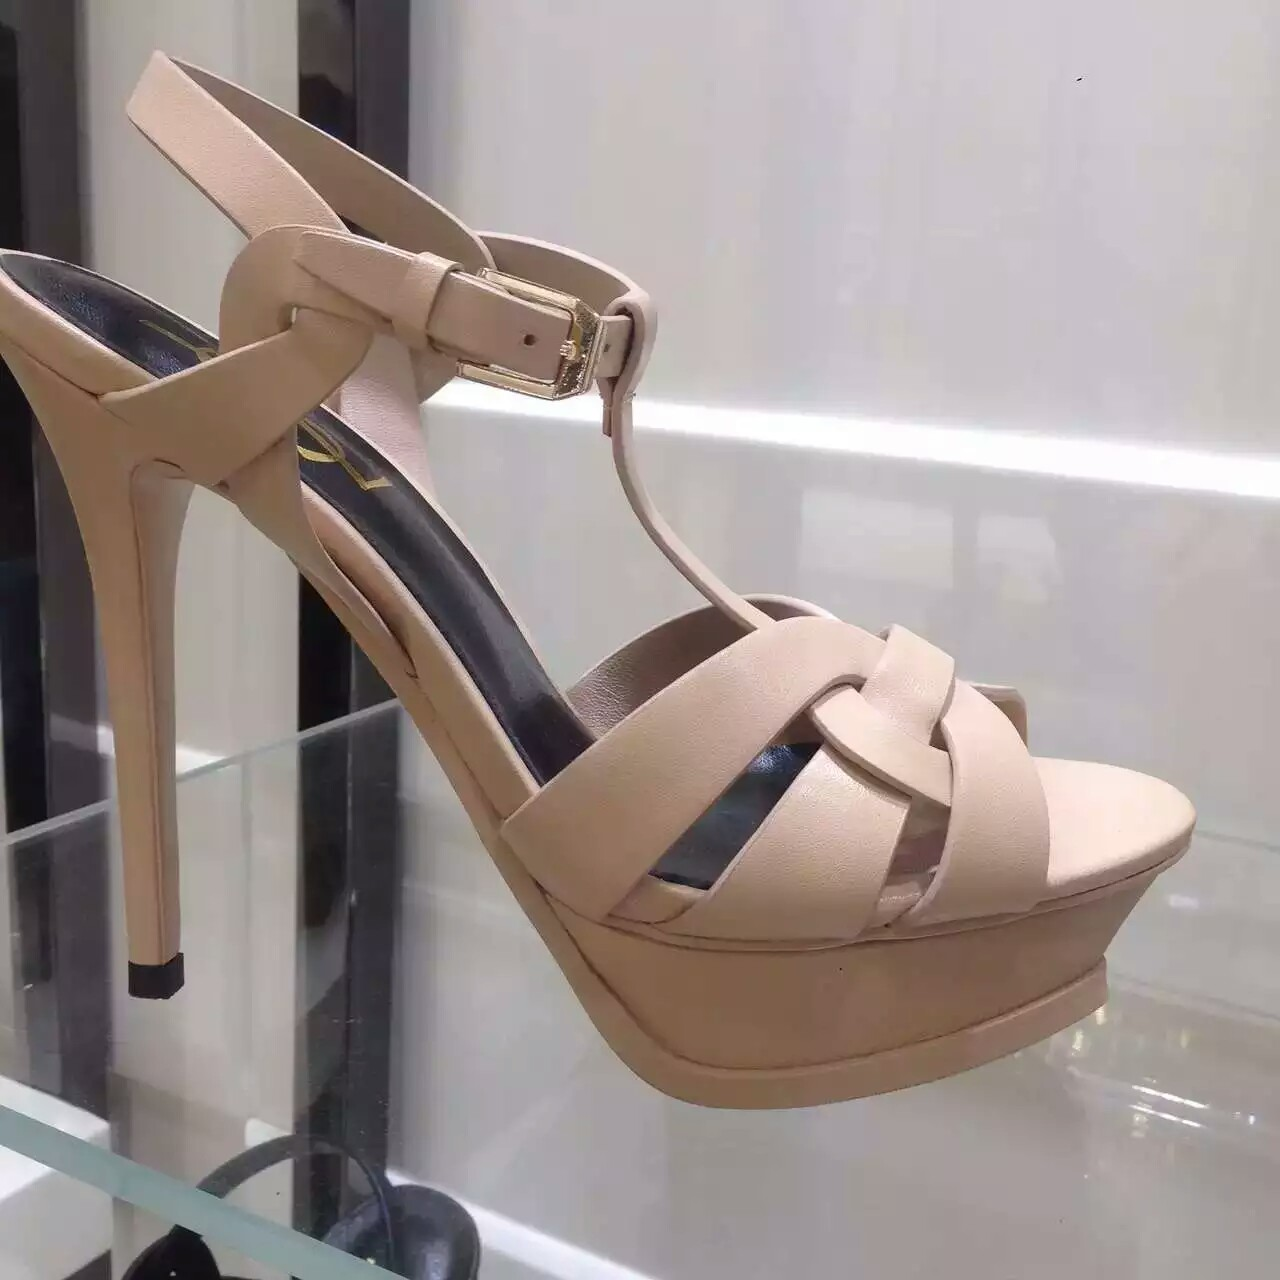 2016 Saint Laurent Shoes Cheap Sale-Saint Laurent Jodie 105 Strappy Sandal in Powder Leather